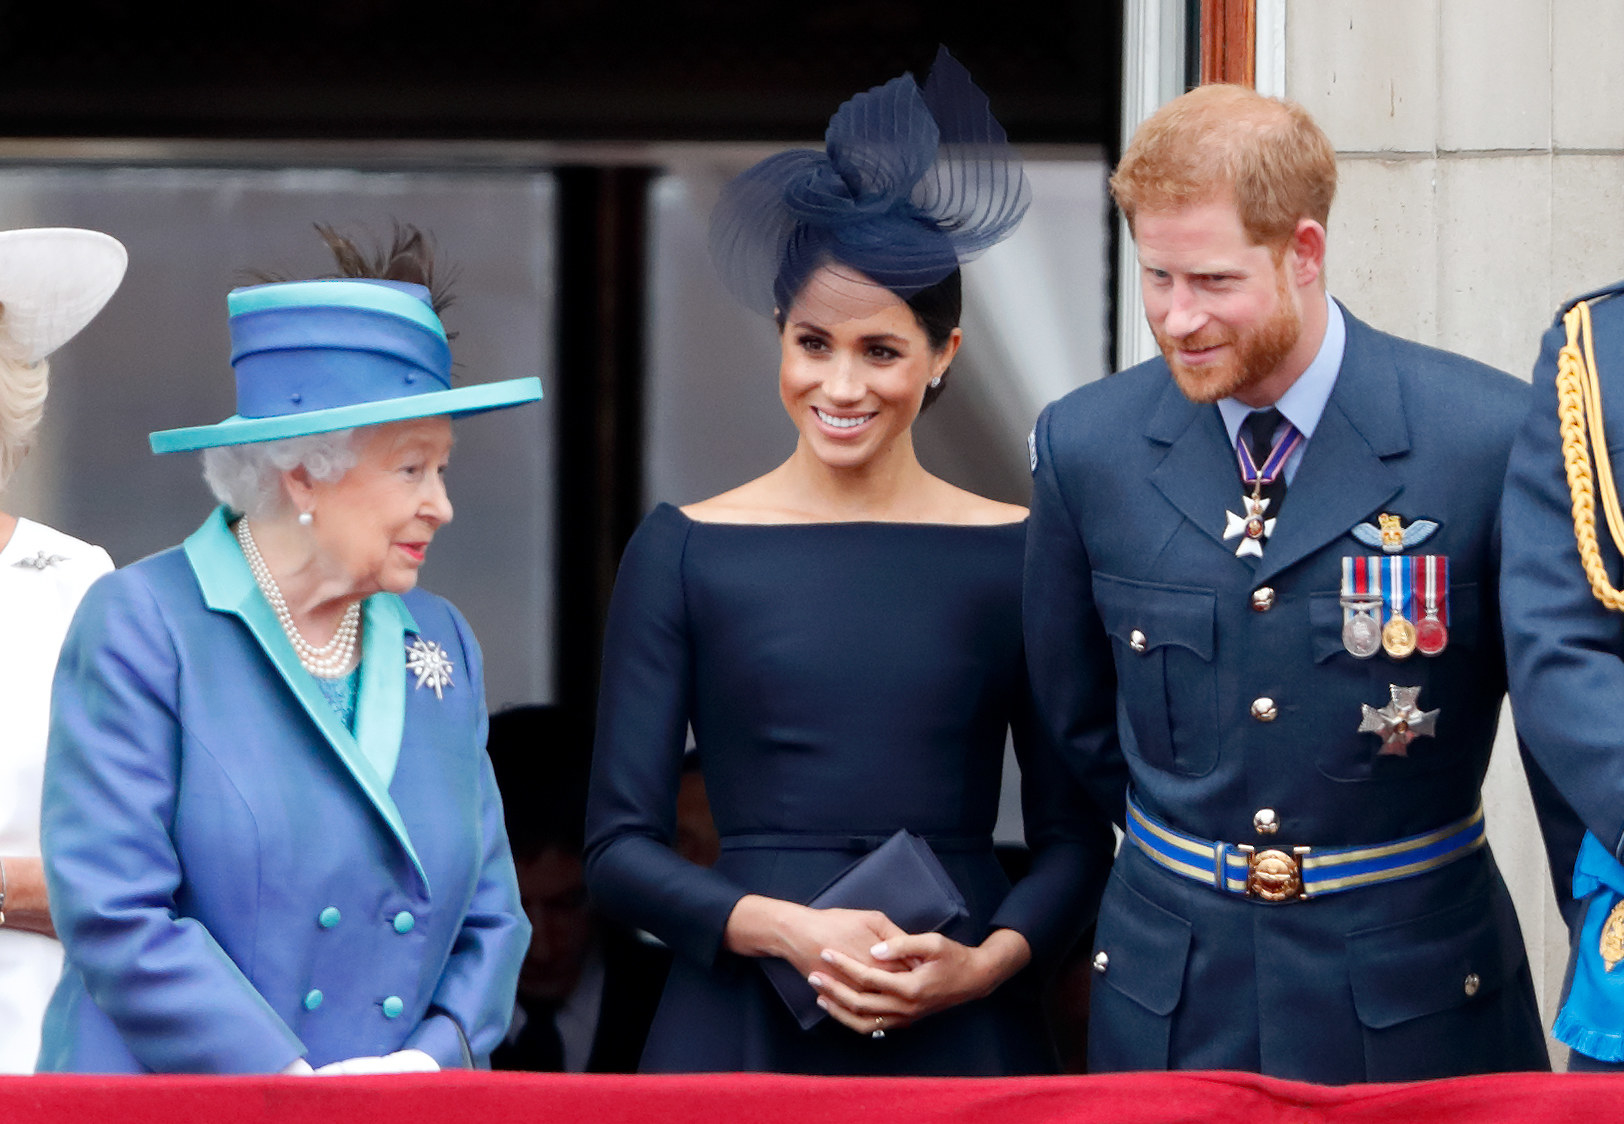 Harry and Meghan lean over to speak with the Queen at a formal event